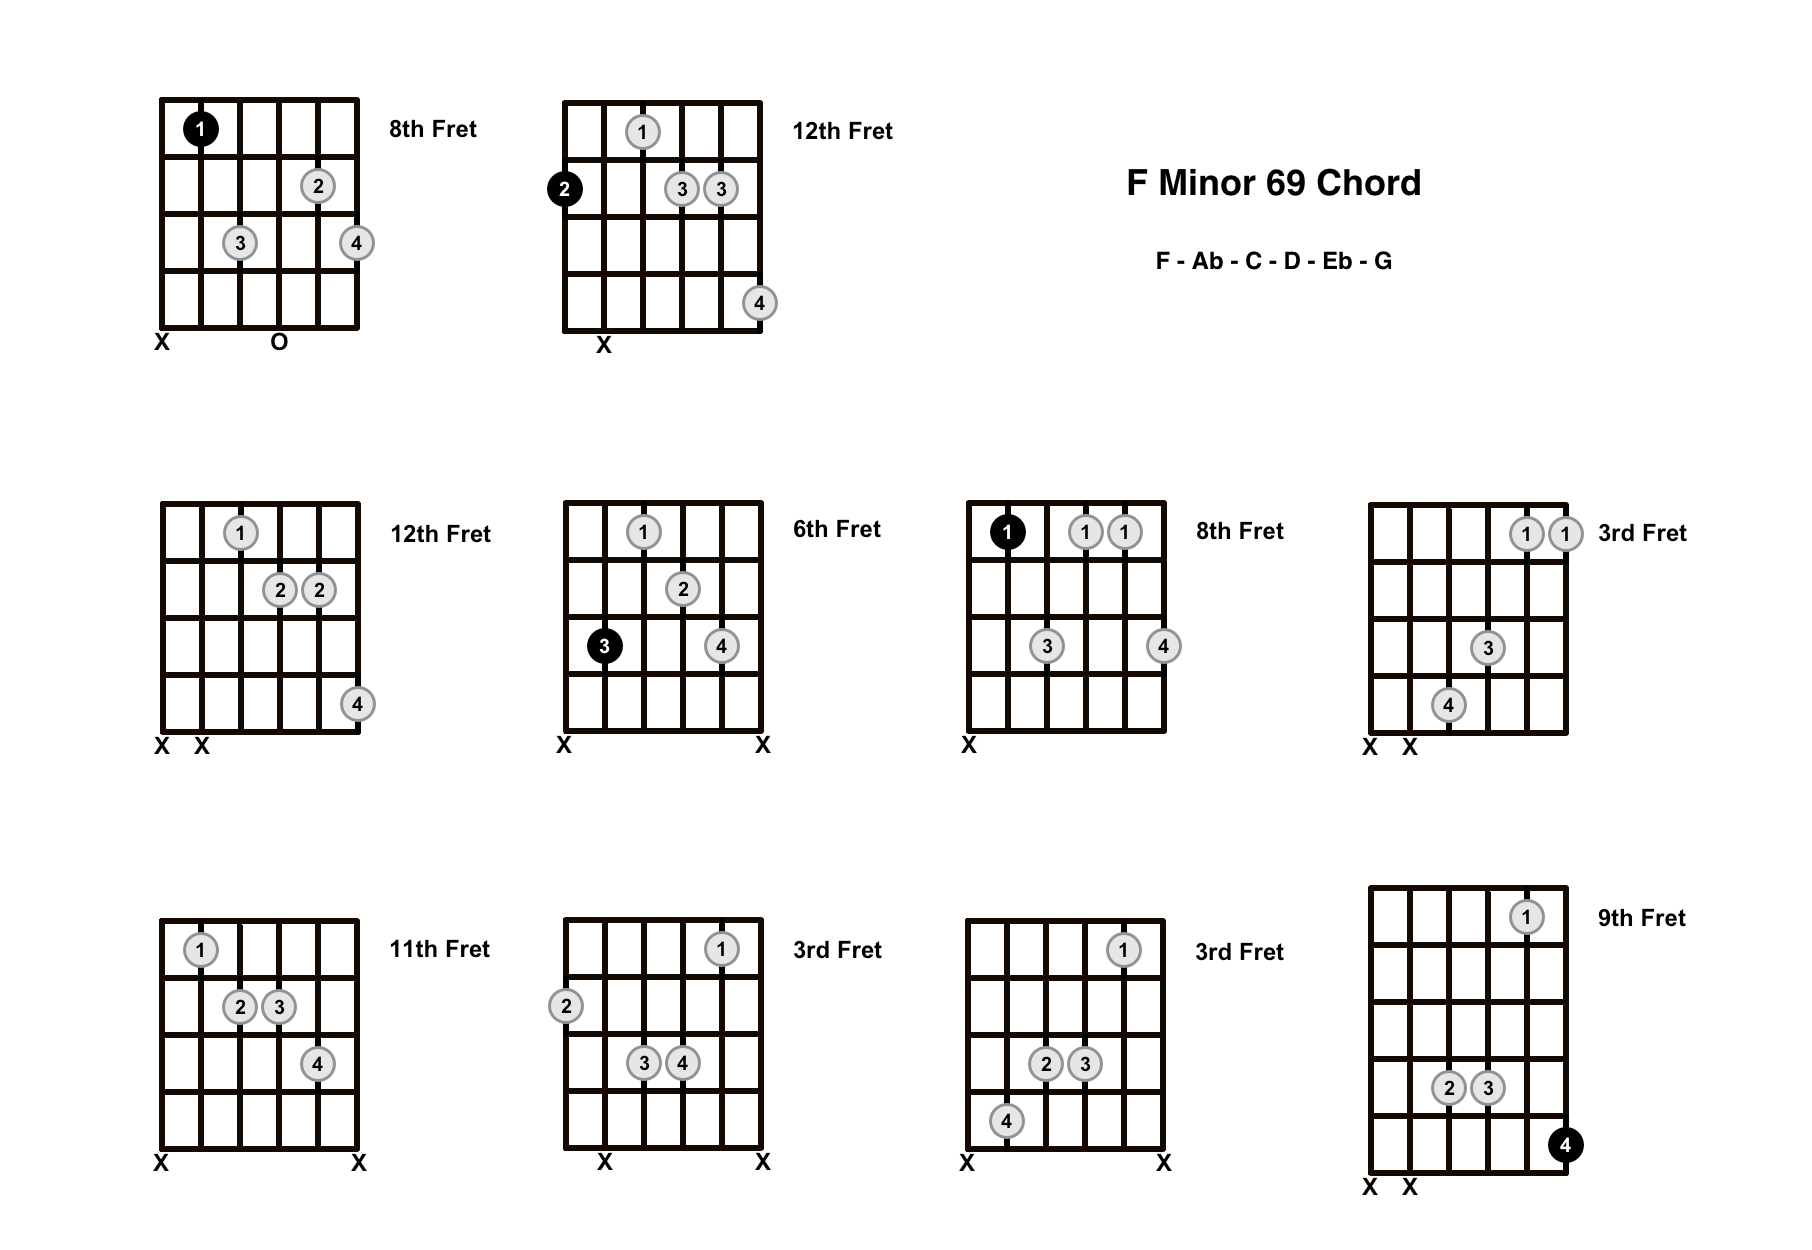 Fm69 Chord On The Guitar (F Minor 69) – Diagrams, Finger Positions and Theory